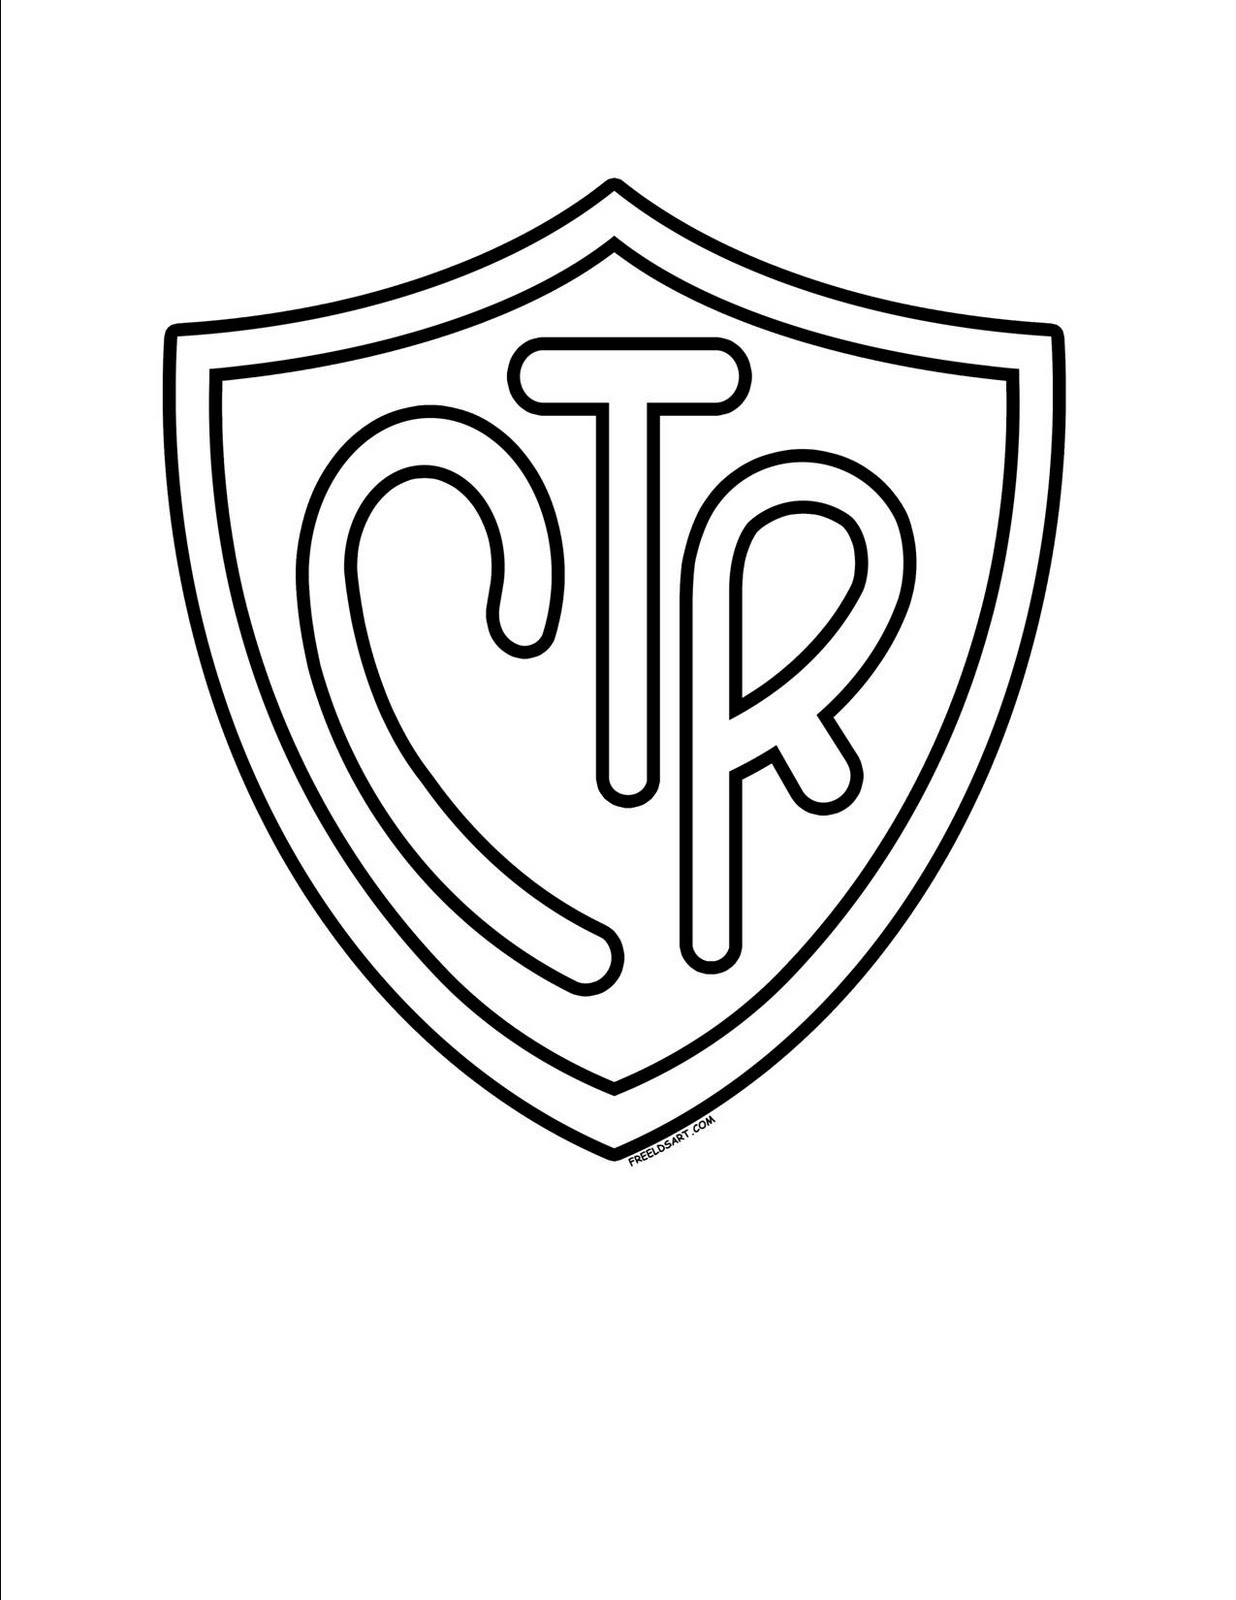 Free Coloring Pages Of Choose The Right Lds Ctr Shield Coloring Page